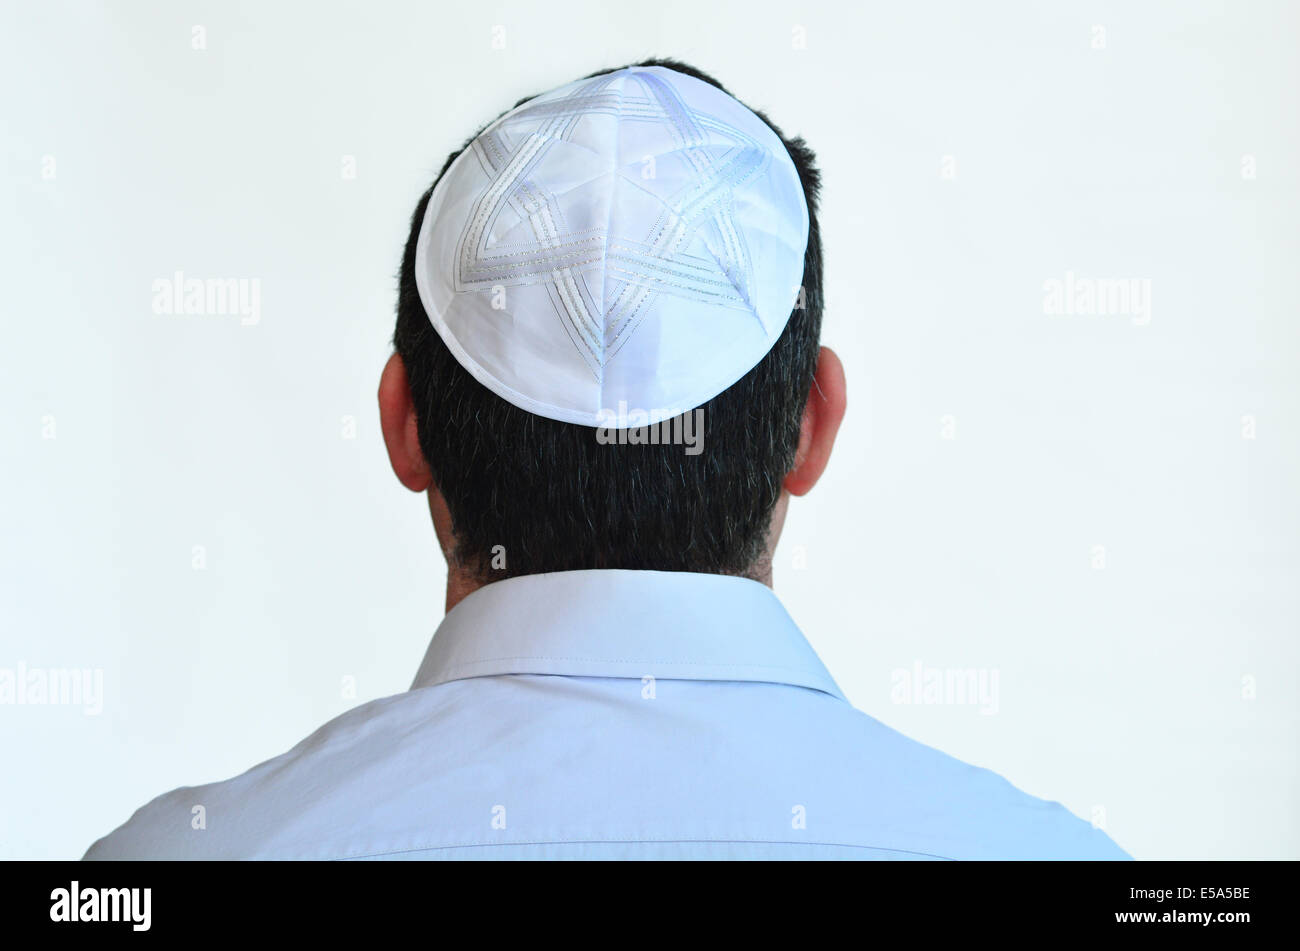 Jewish man with kippah isolated on white background. Concept photo Judaism ,religion belief, faith, lifestyle Stock Photo